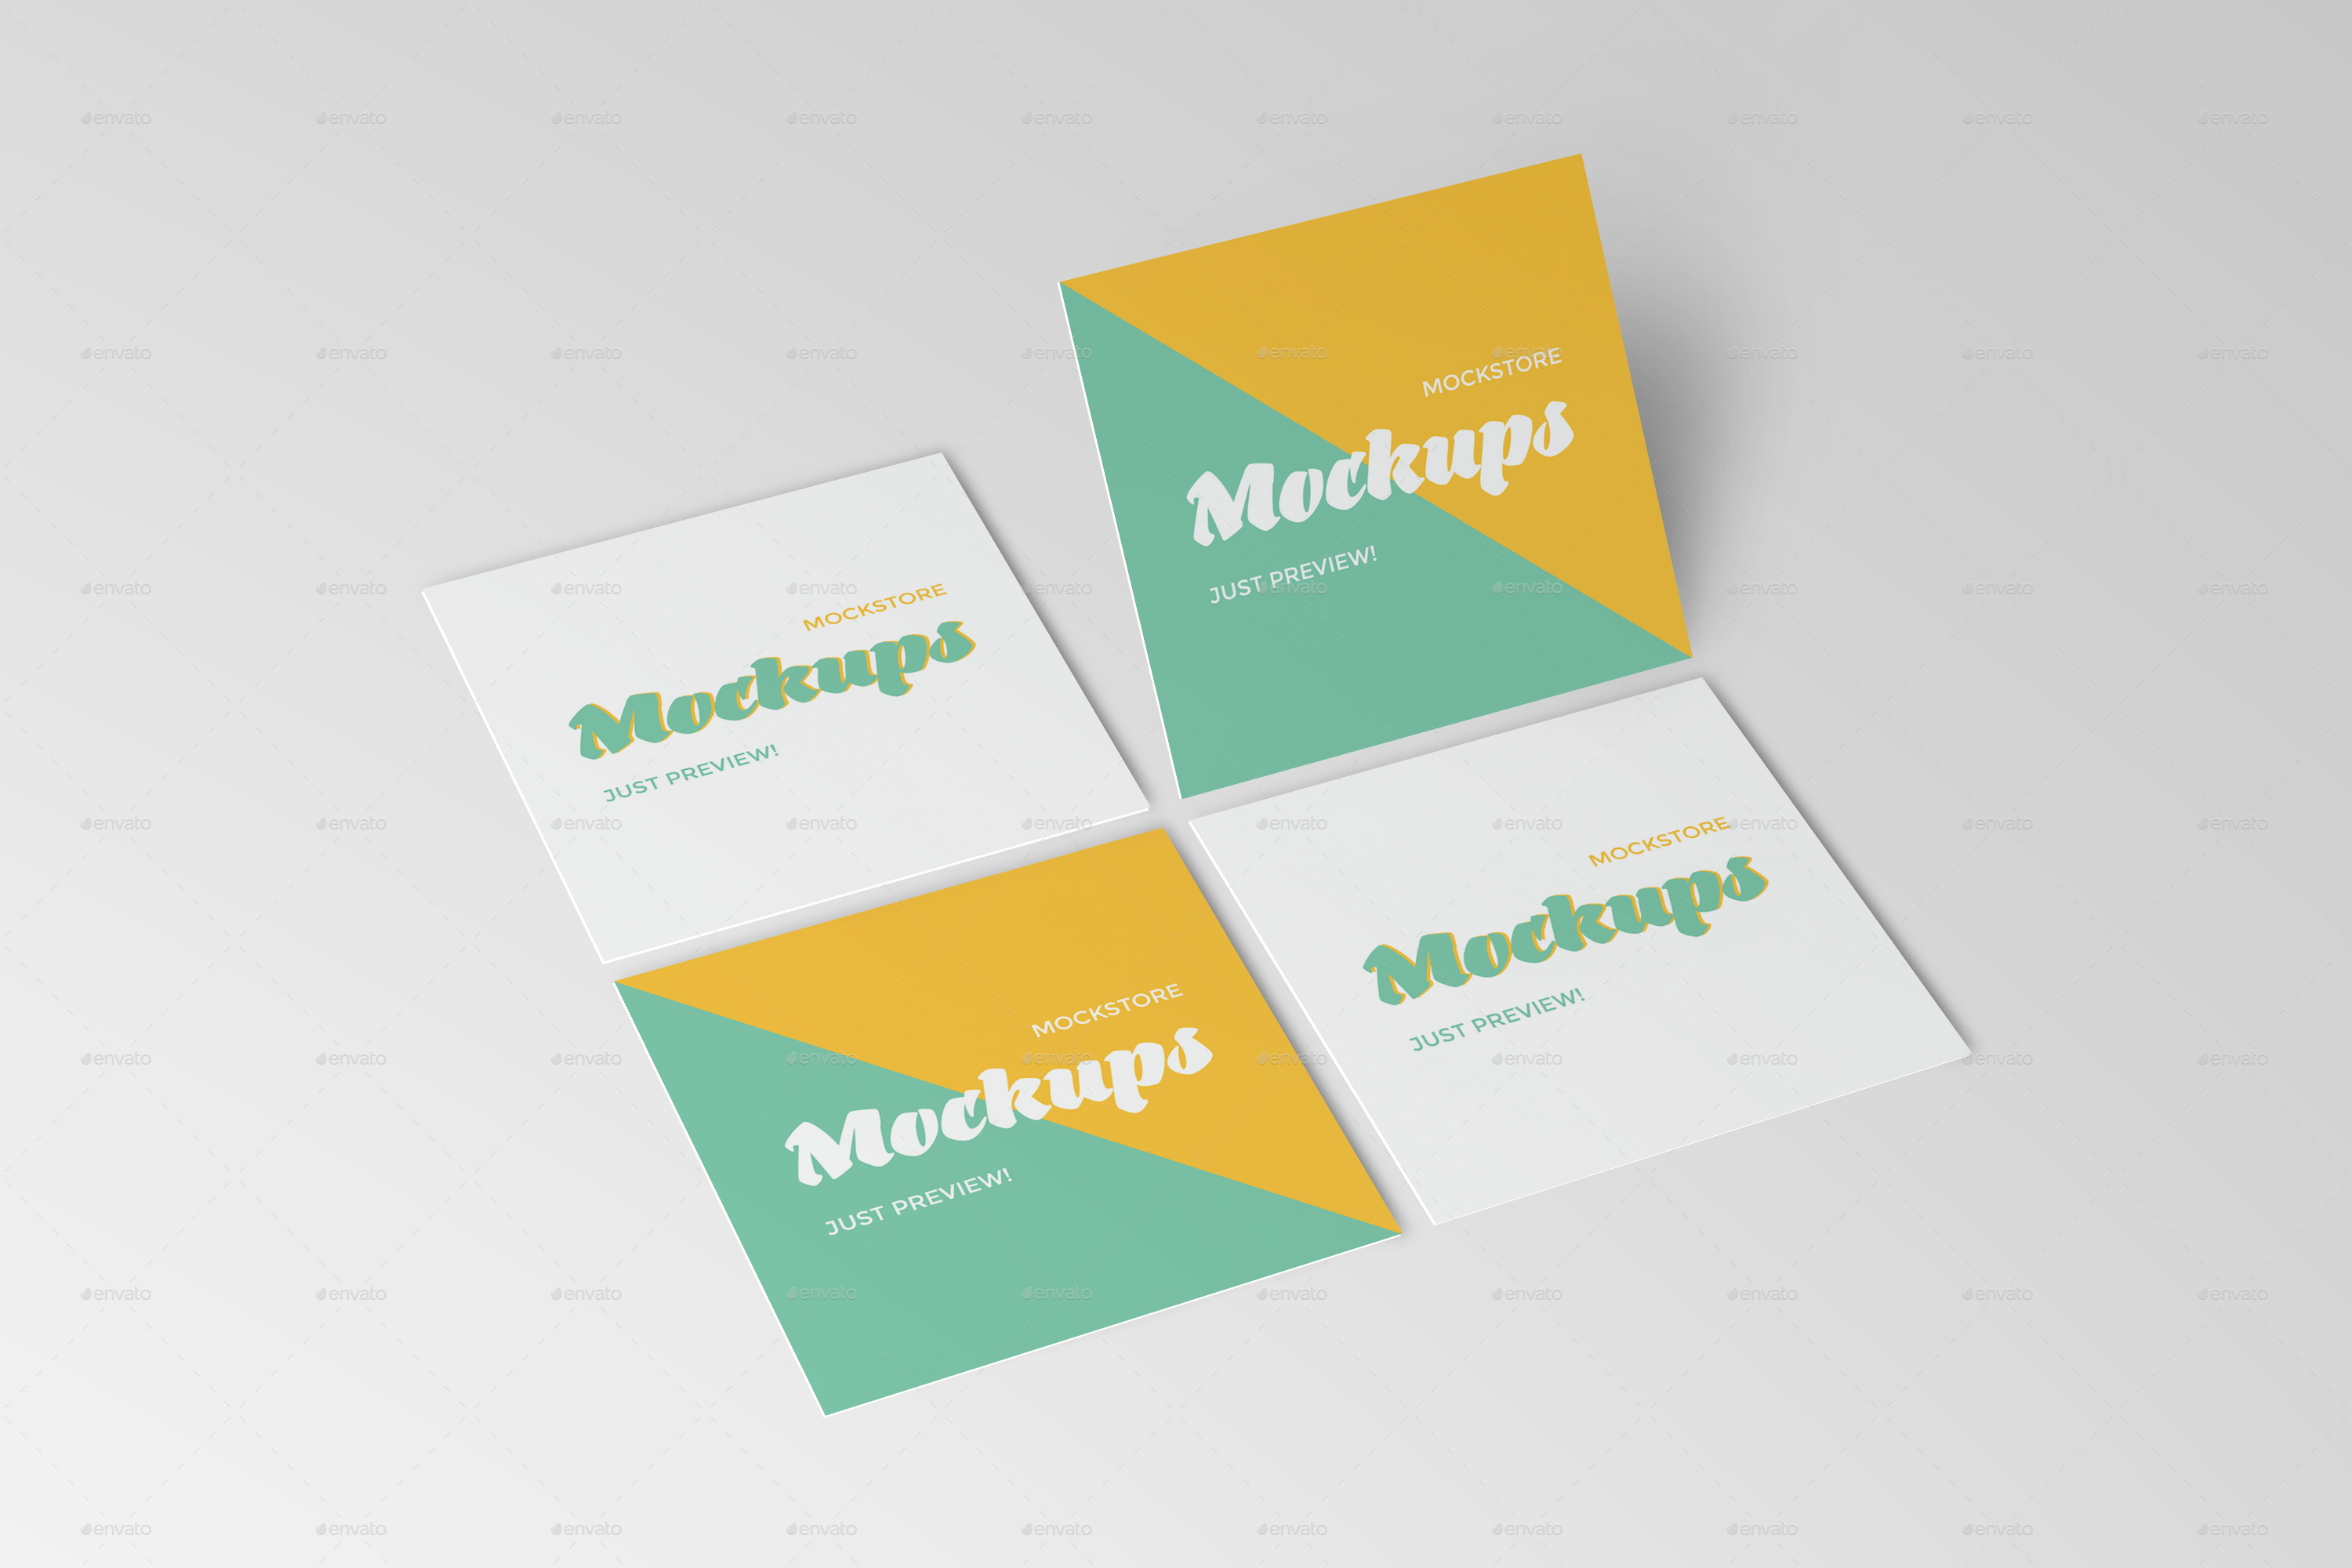 jpgsquare business card mockups 1jpg jpgsquare business card mockups 2jpg